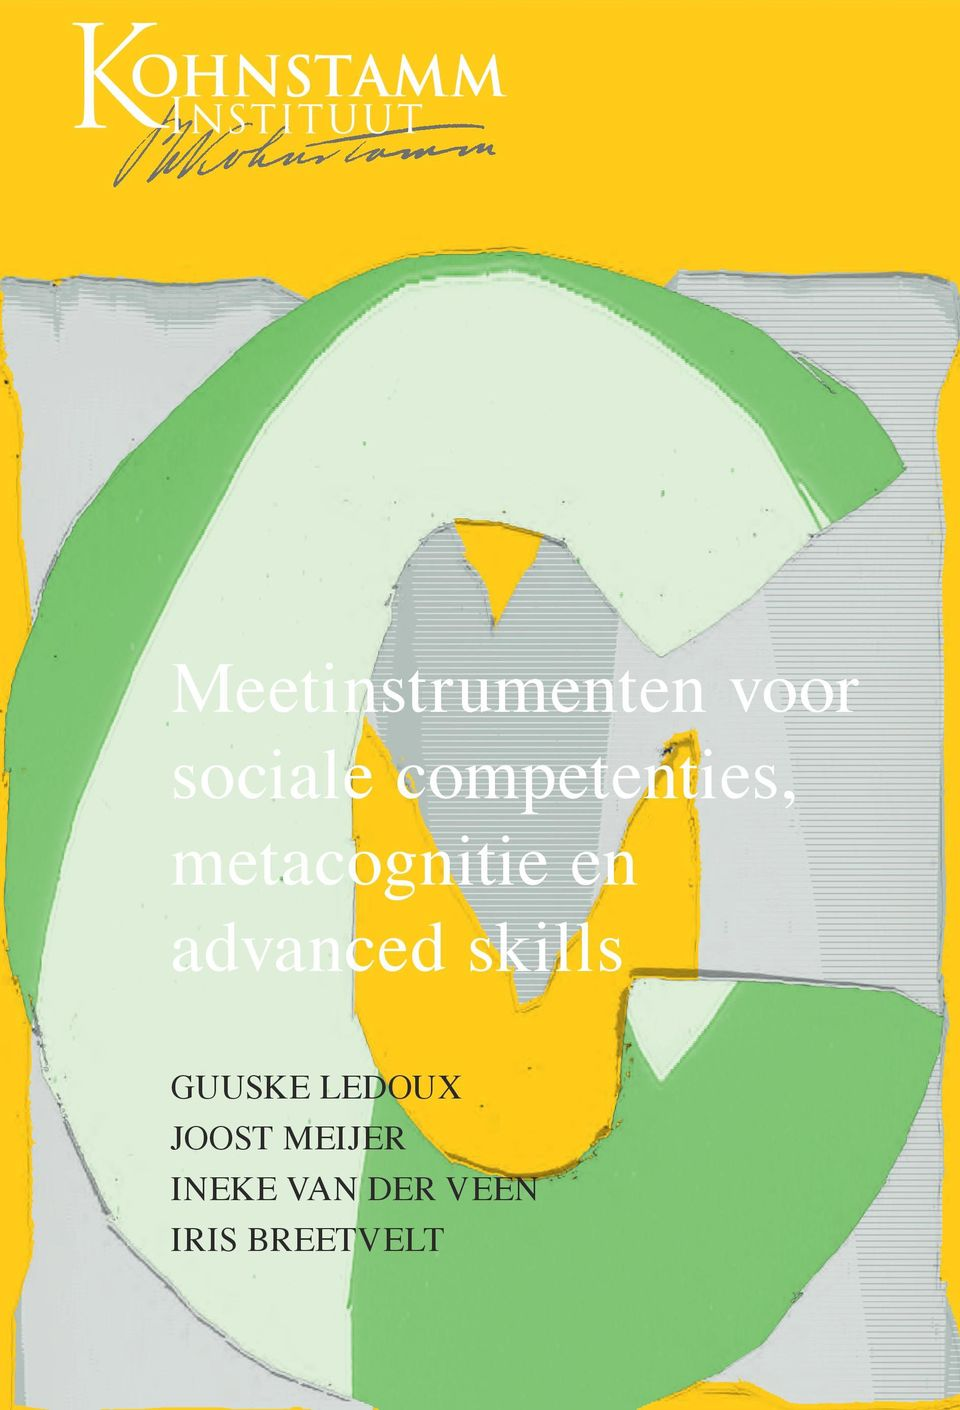 advanced skills GUUSKE LEDOUX